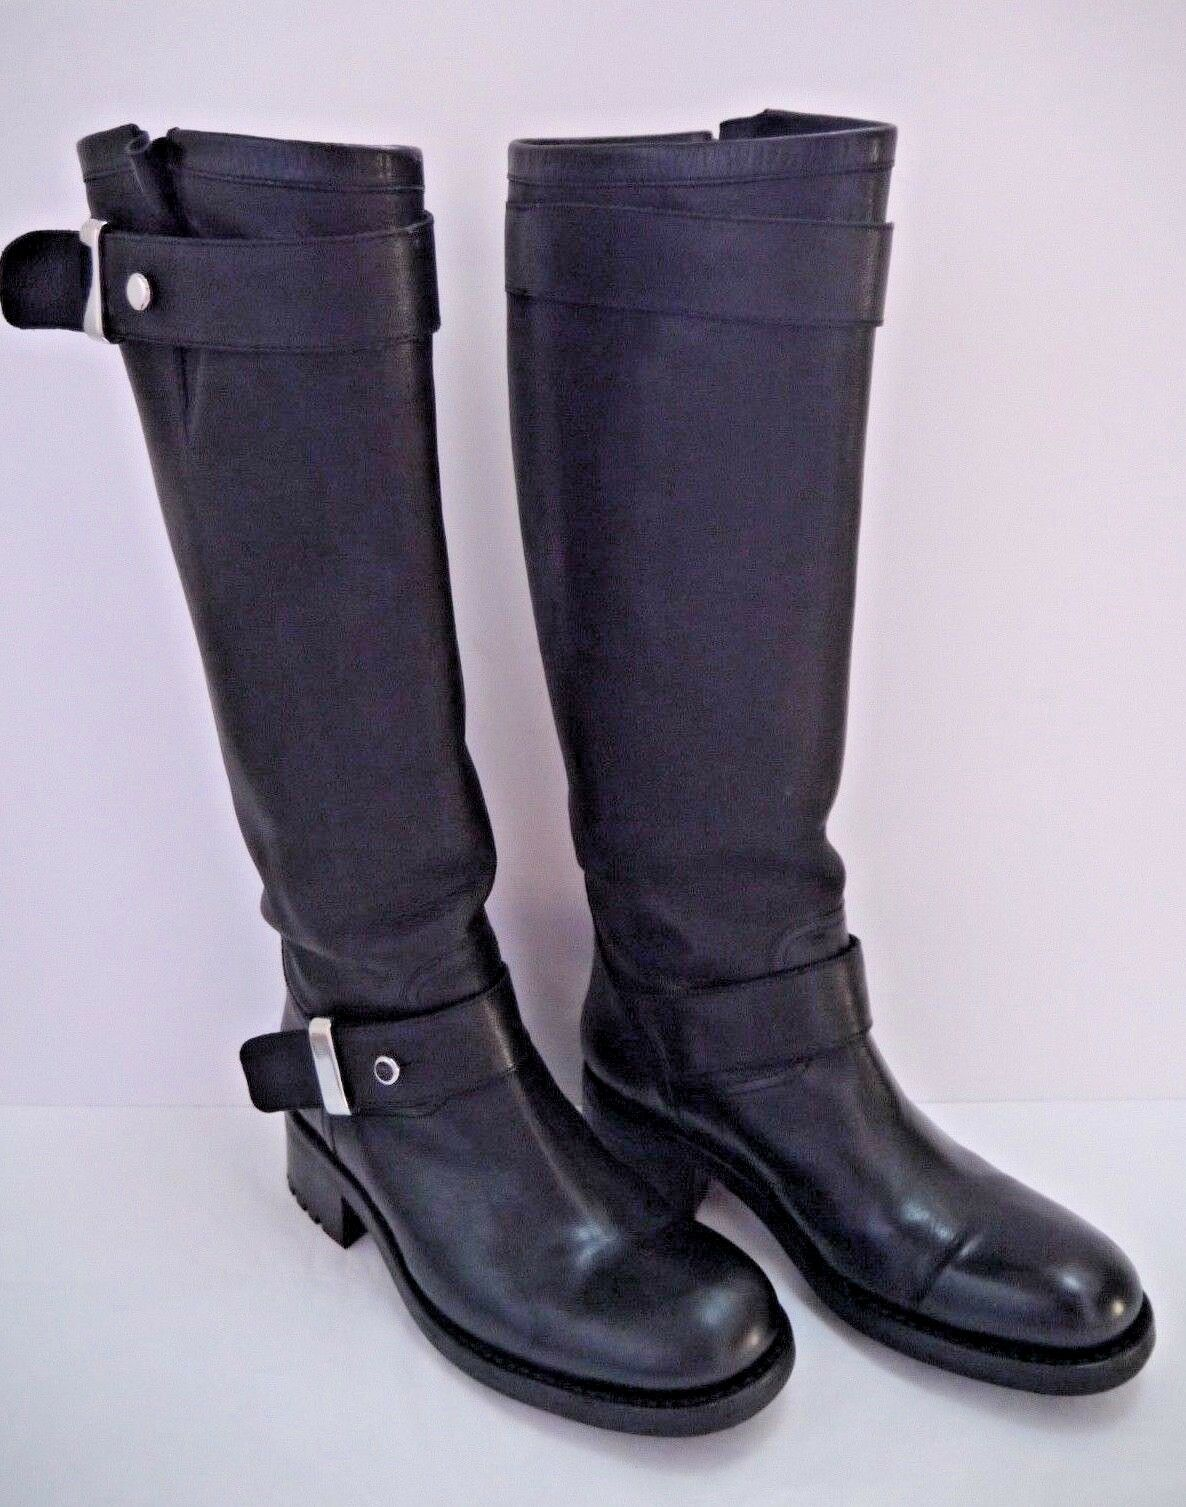 FREE LANCE black leather knee high moto biker boots size 38